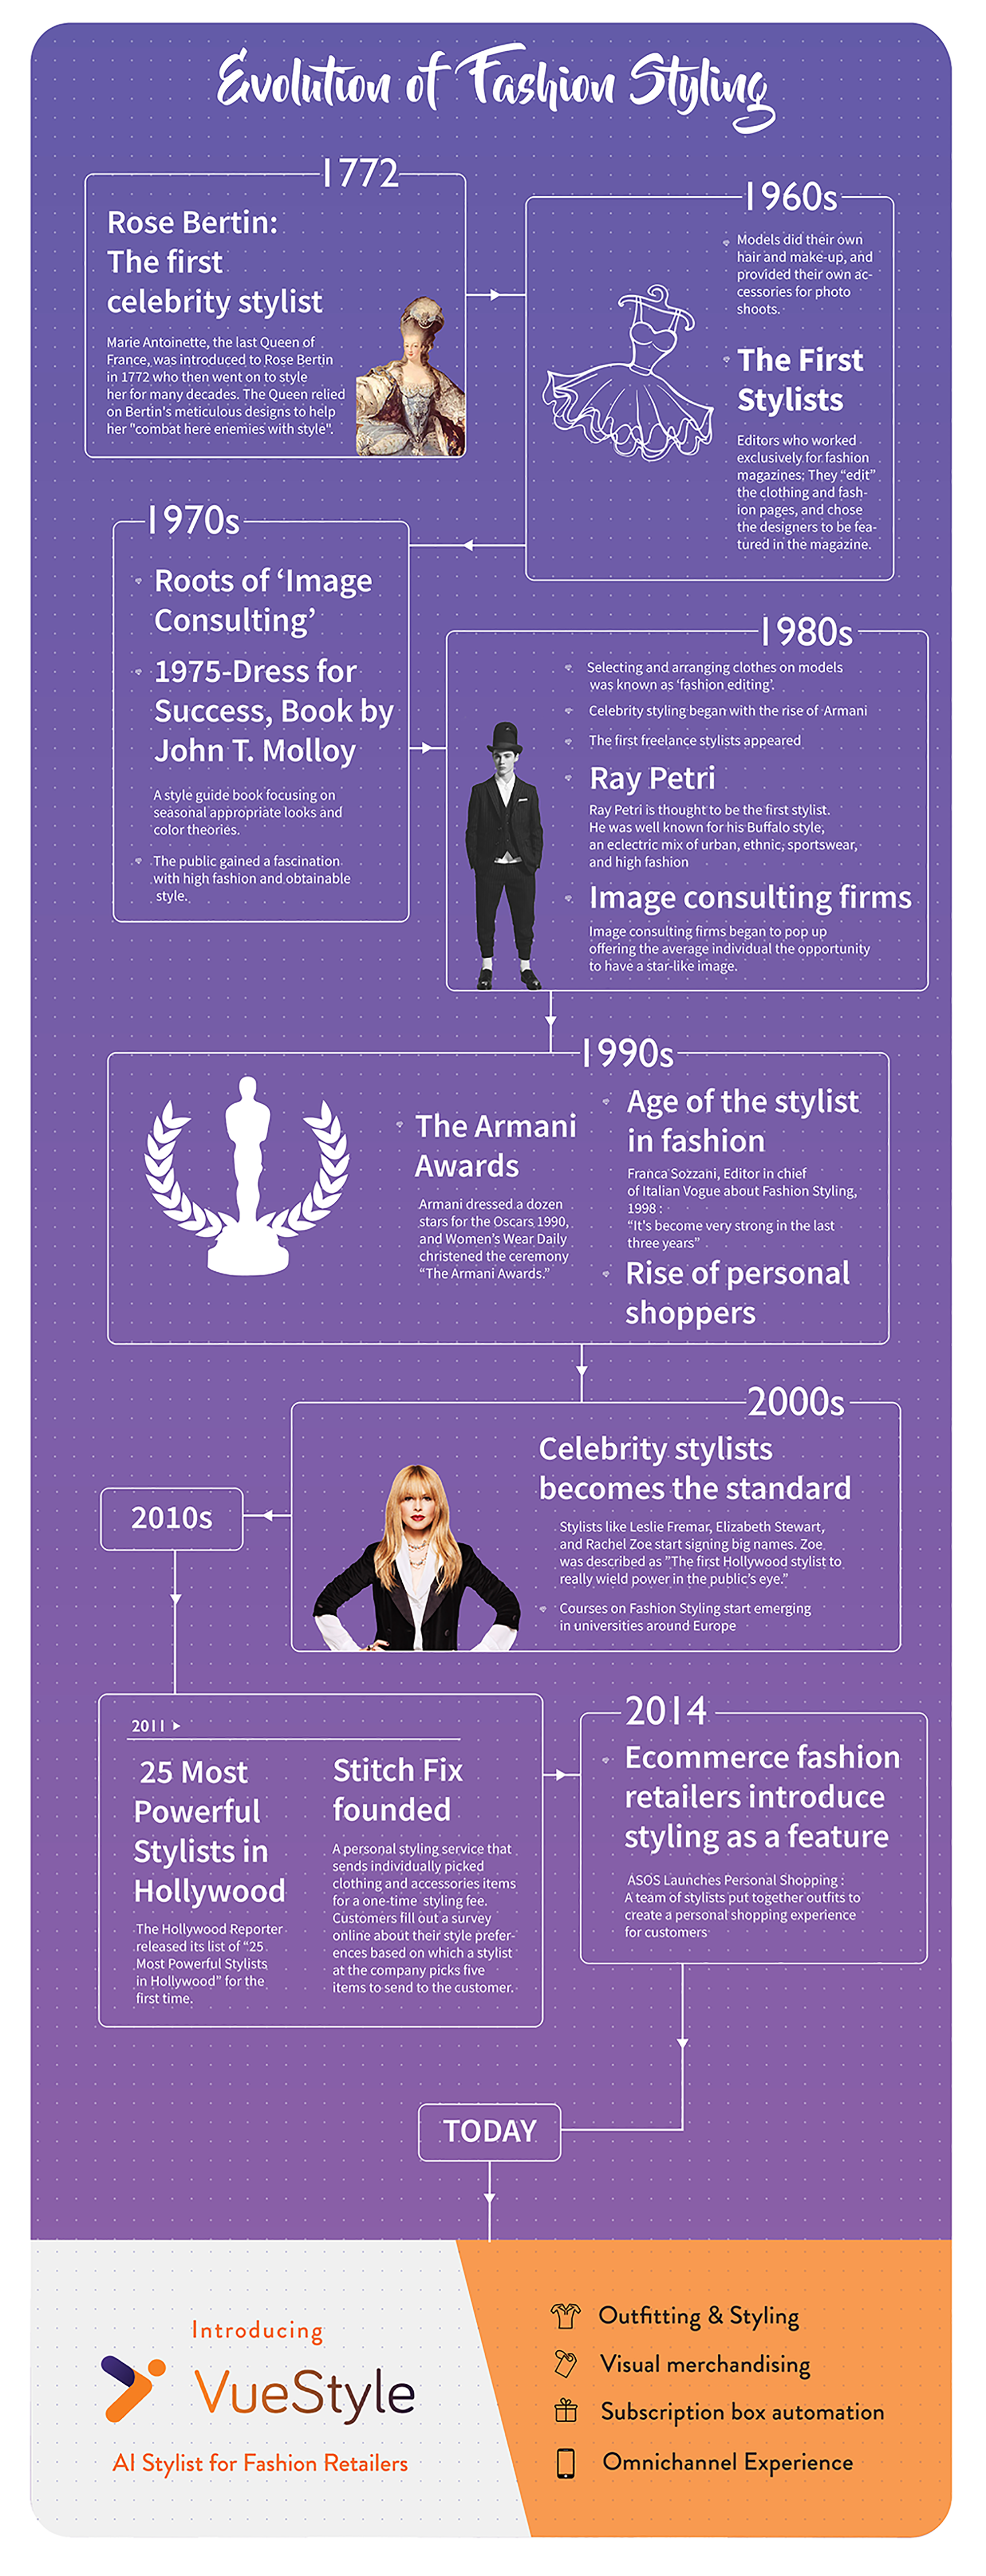 History of Fashion Styling Infographic